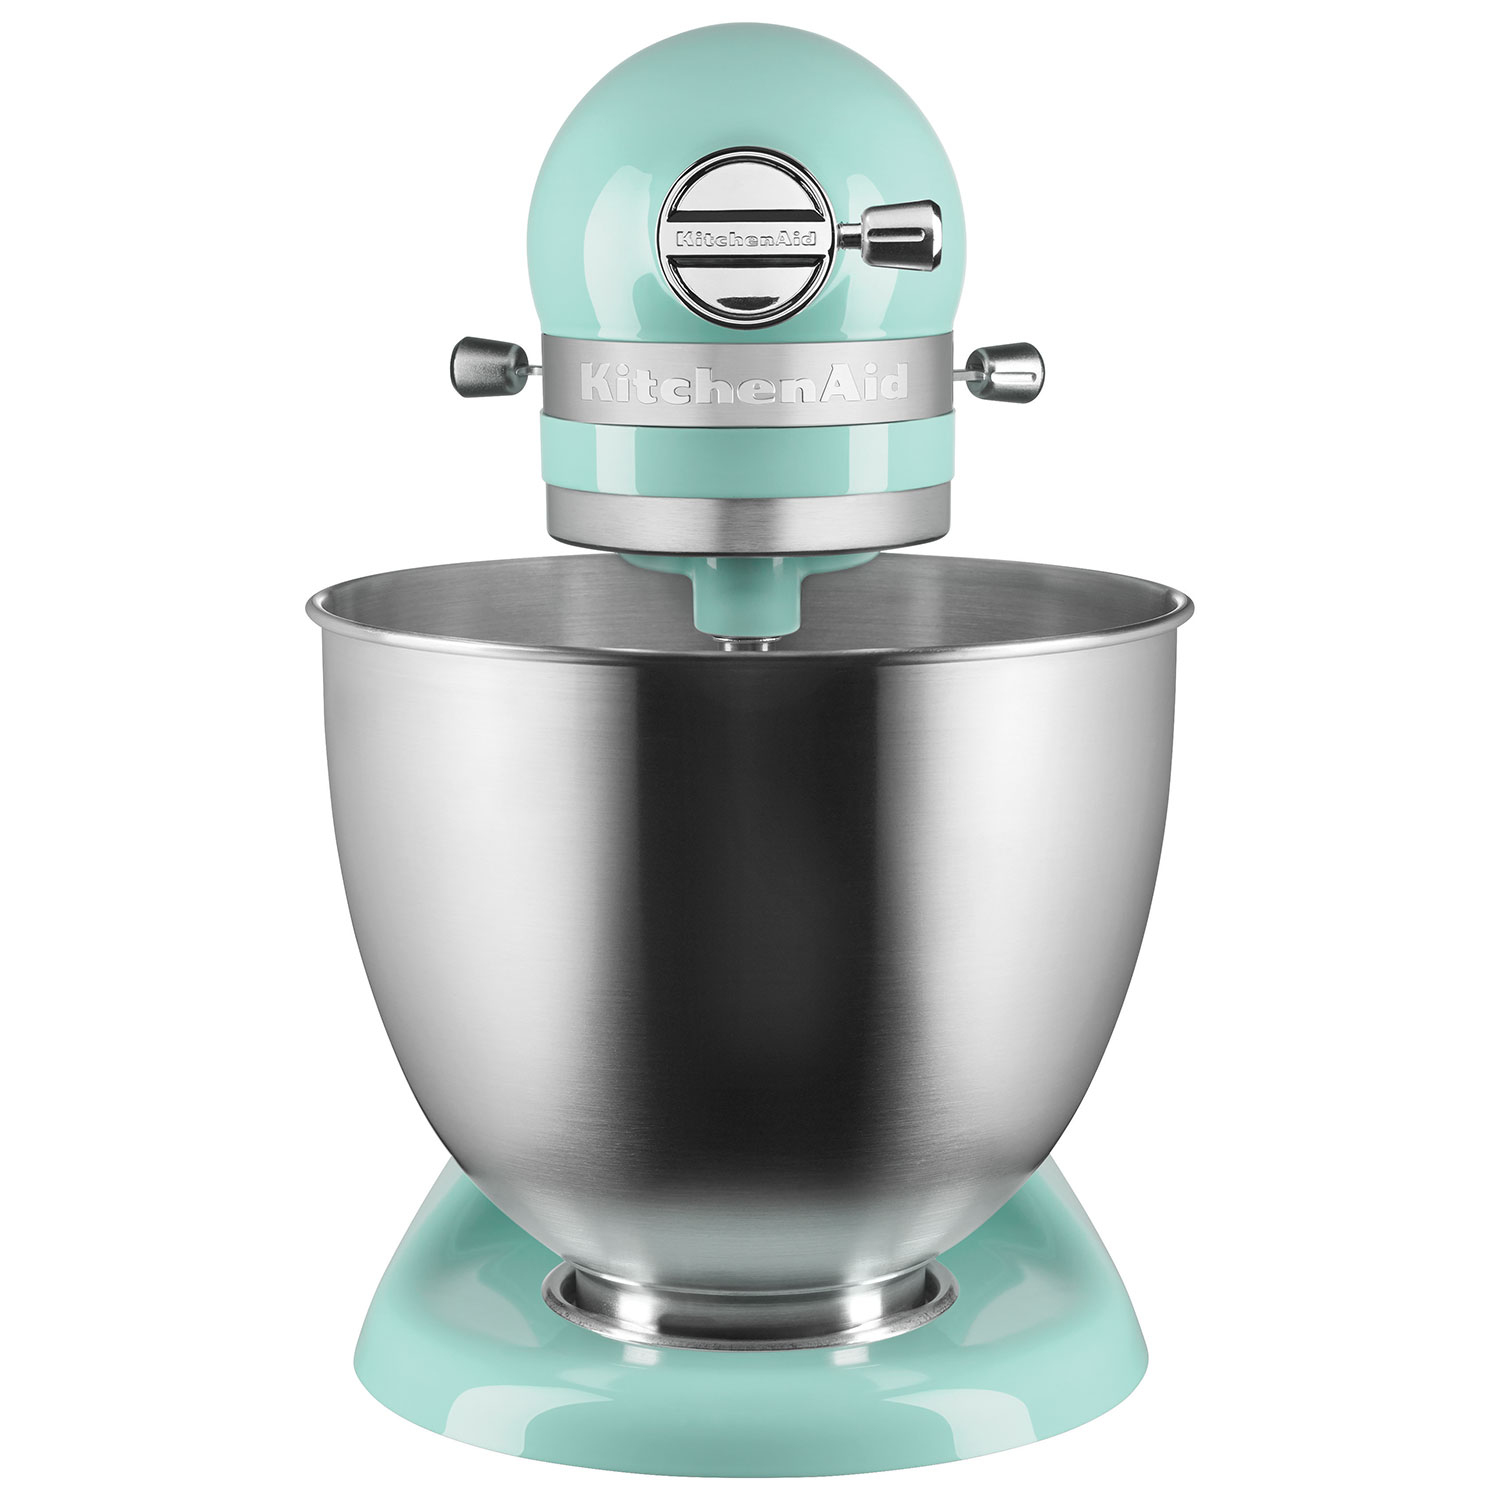 KitchenAid Artisan Mini Stand Mixer   3.5Qt   Ice Blue : Stand Mixers    Best Buy Canada